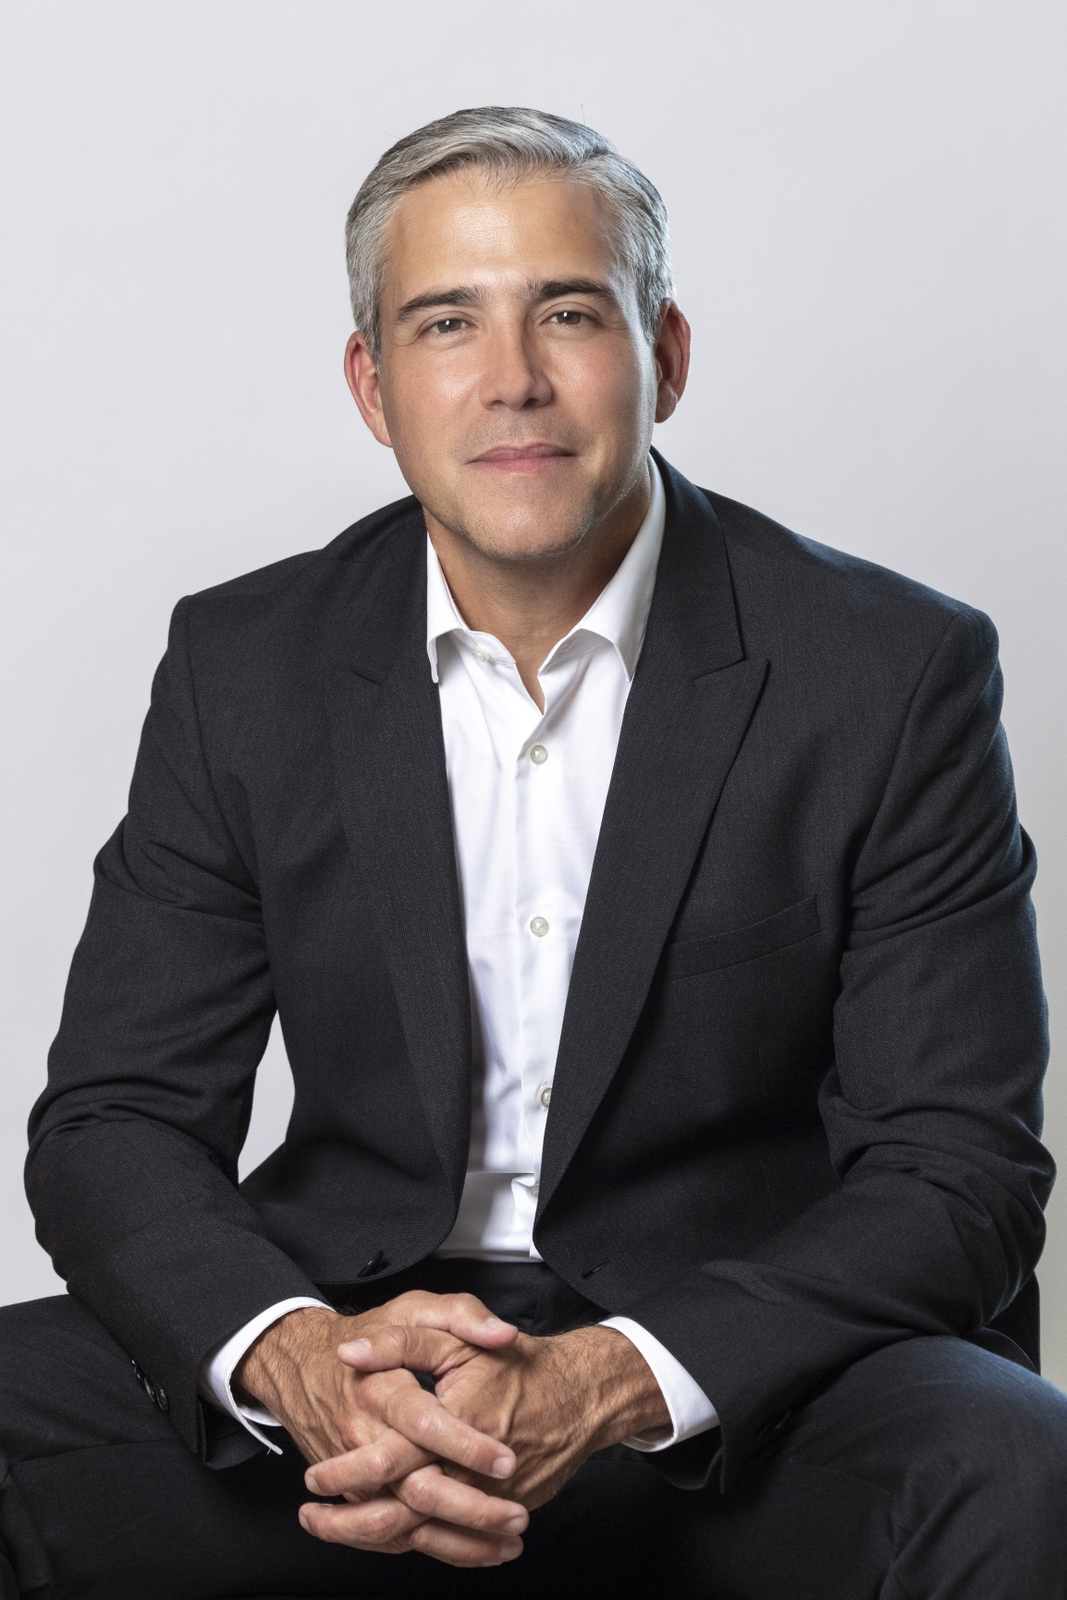 DUNKIN' APPOINTS NEW CHIEF MARKETING OFFICER